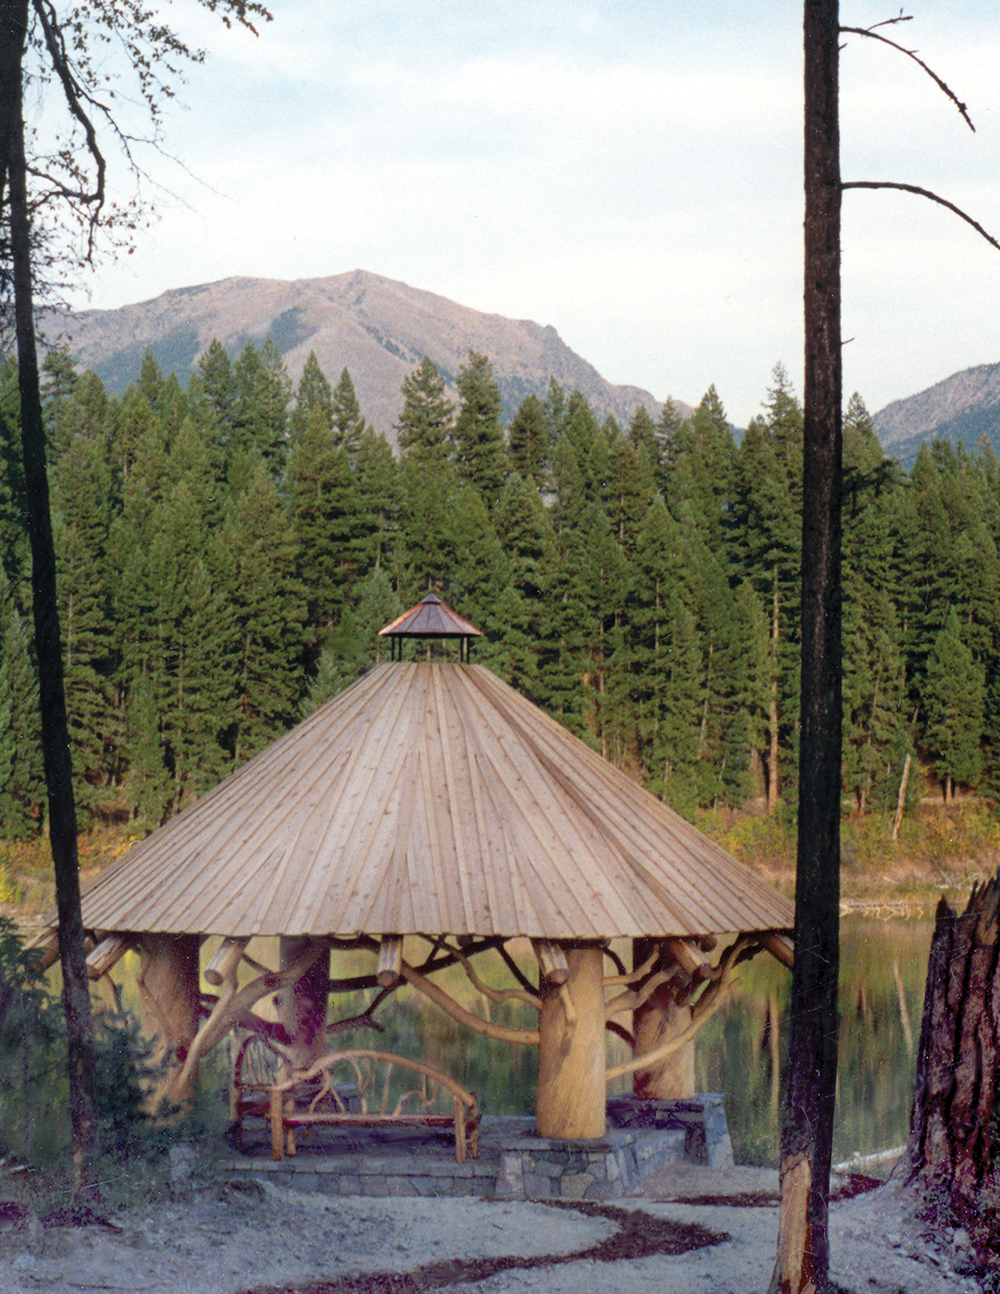 horseshoe_lodge_pavilion_gazebo.jpg